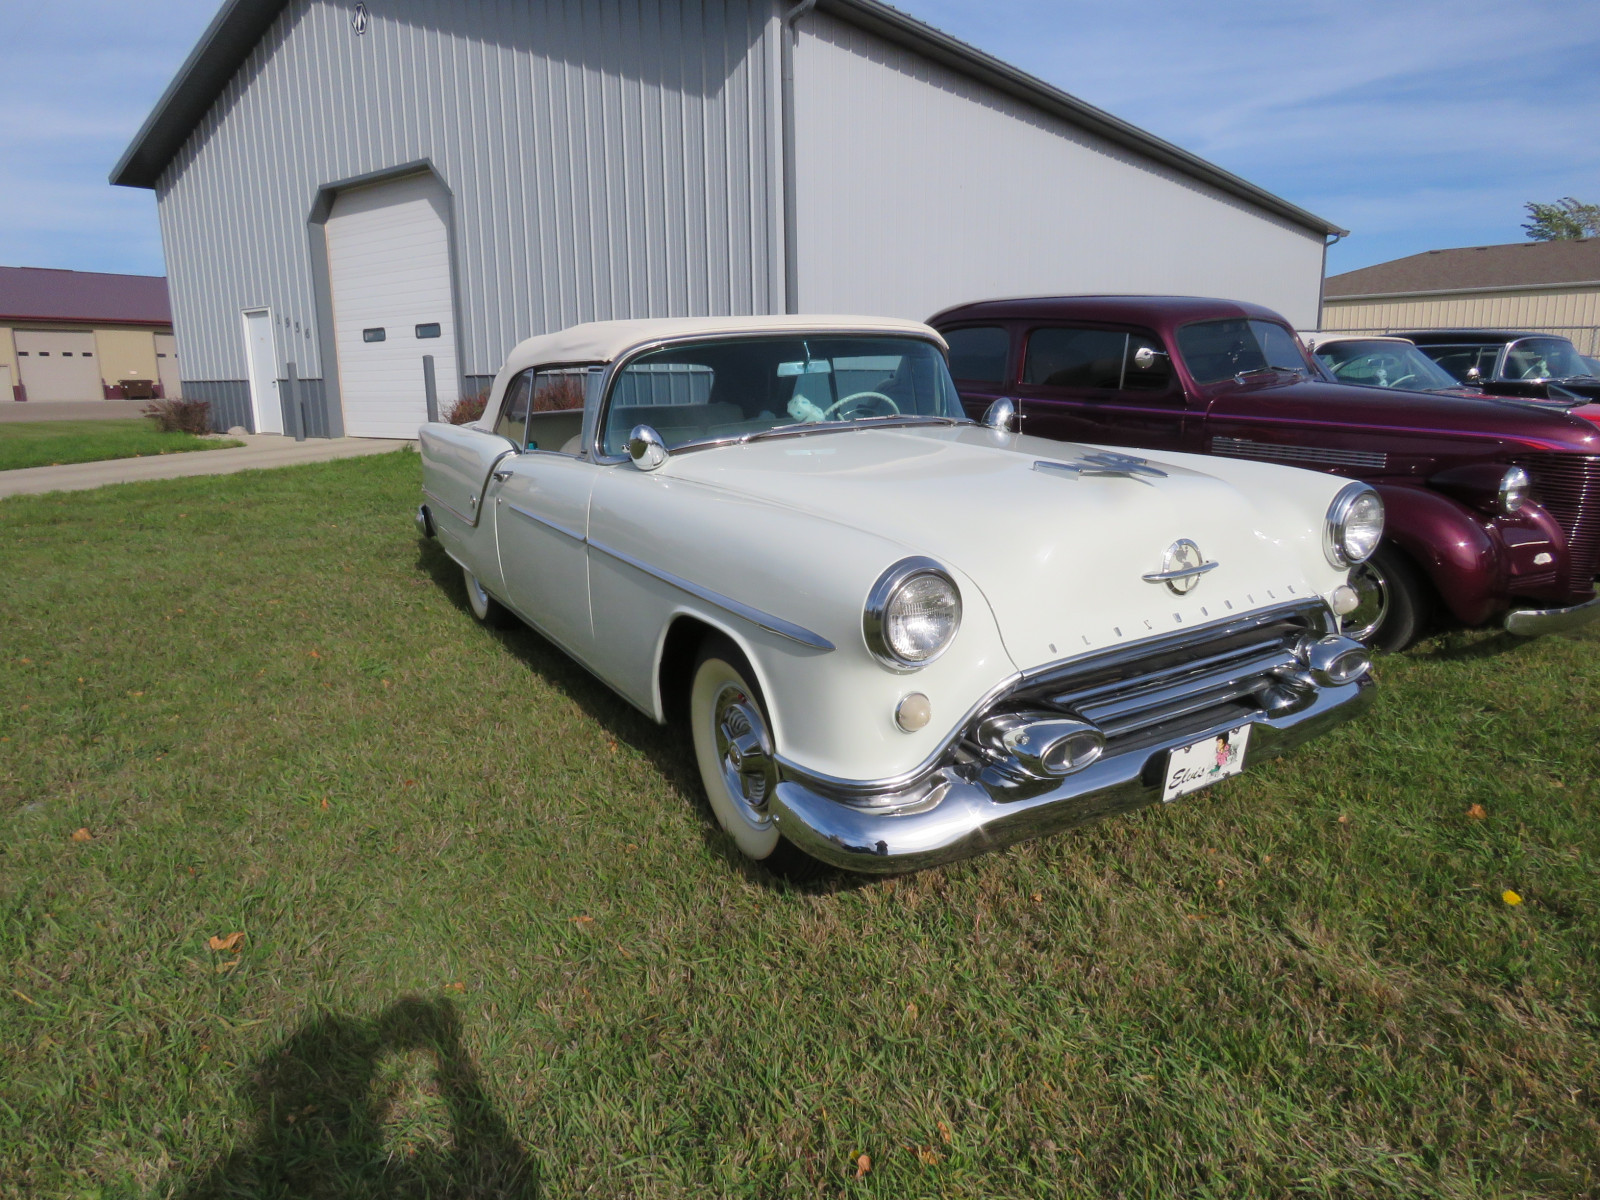 Rare 1954 Oldsmobile Super 88 Convertible - Image 3